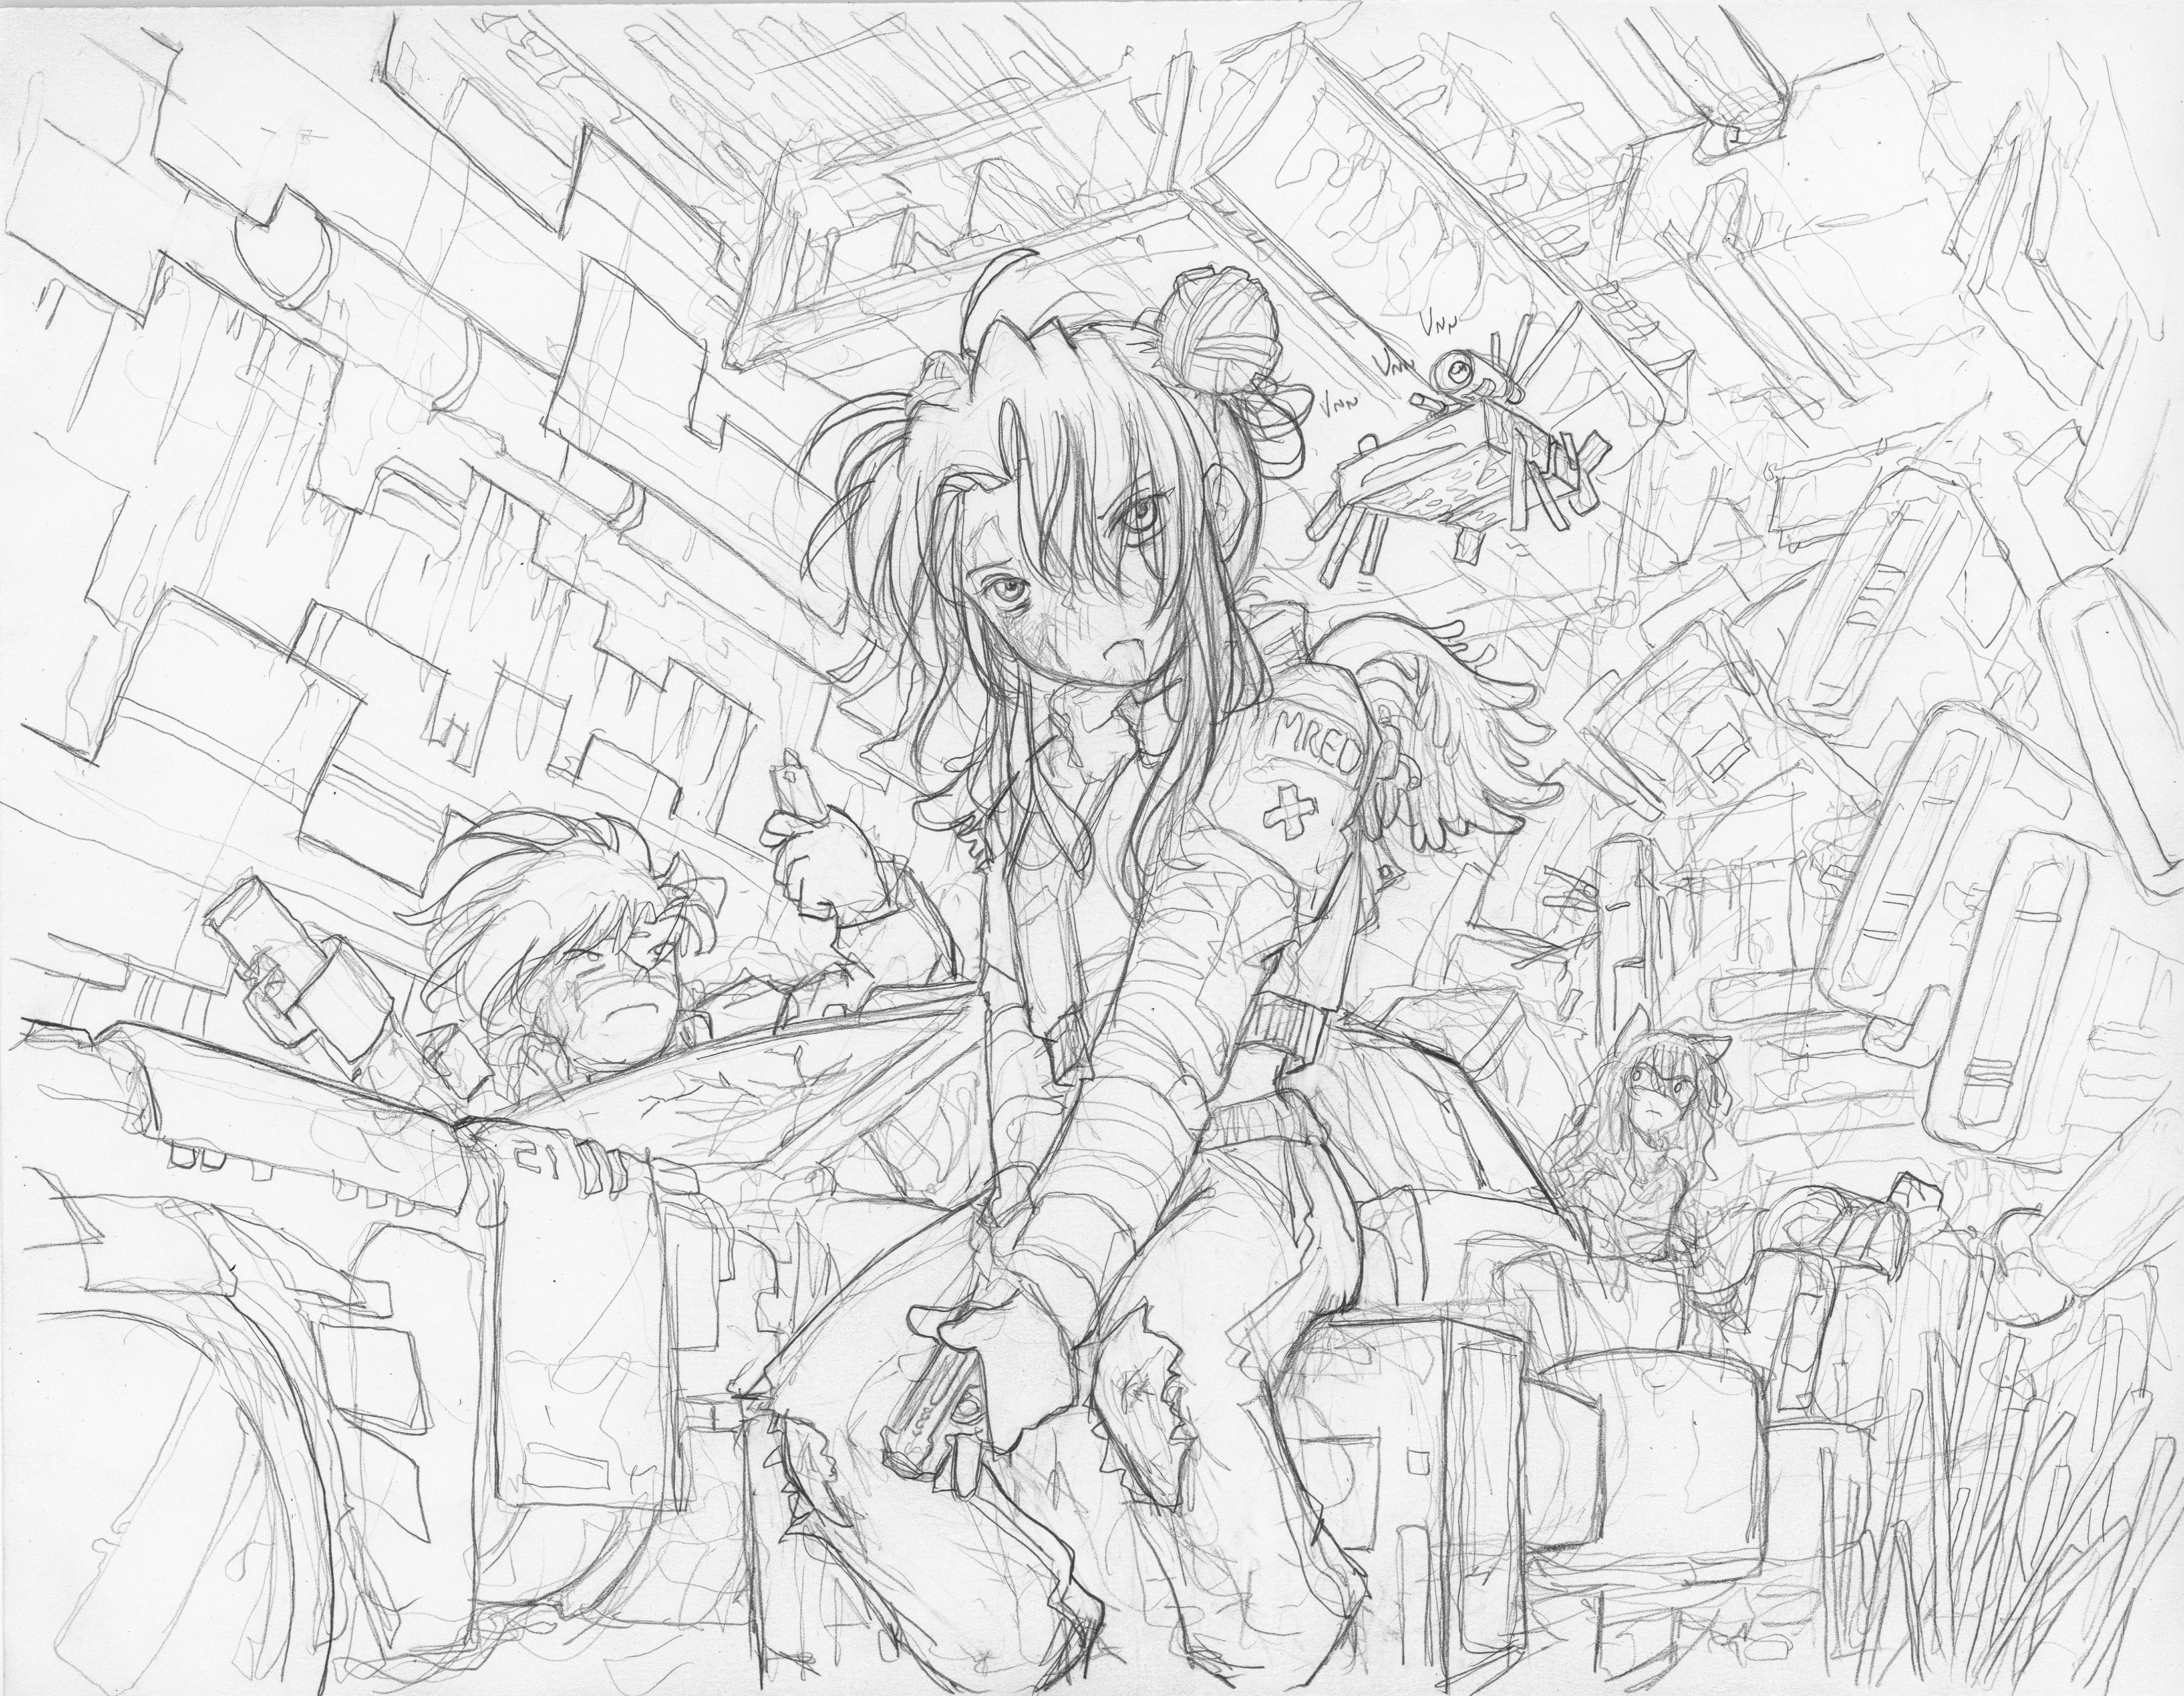 Pencil (HB) on HP Bright White Inkjet Paper - sketch out